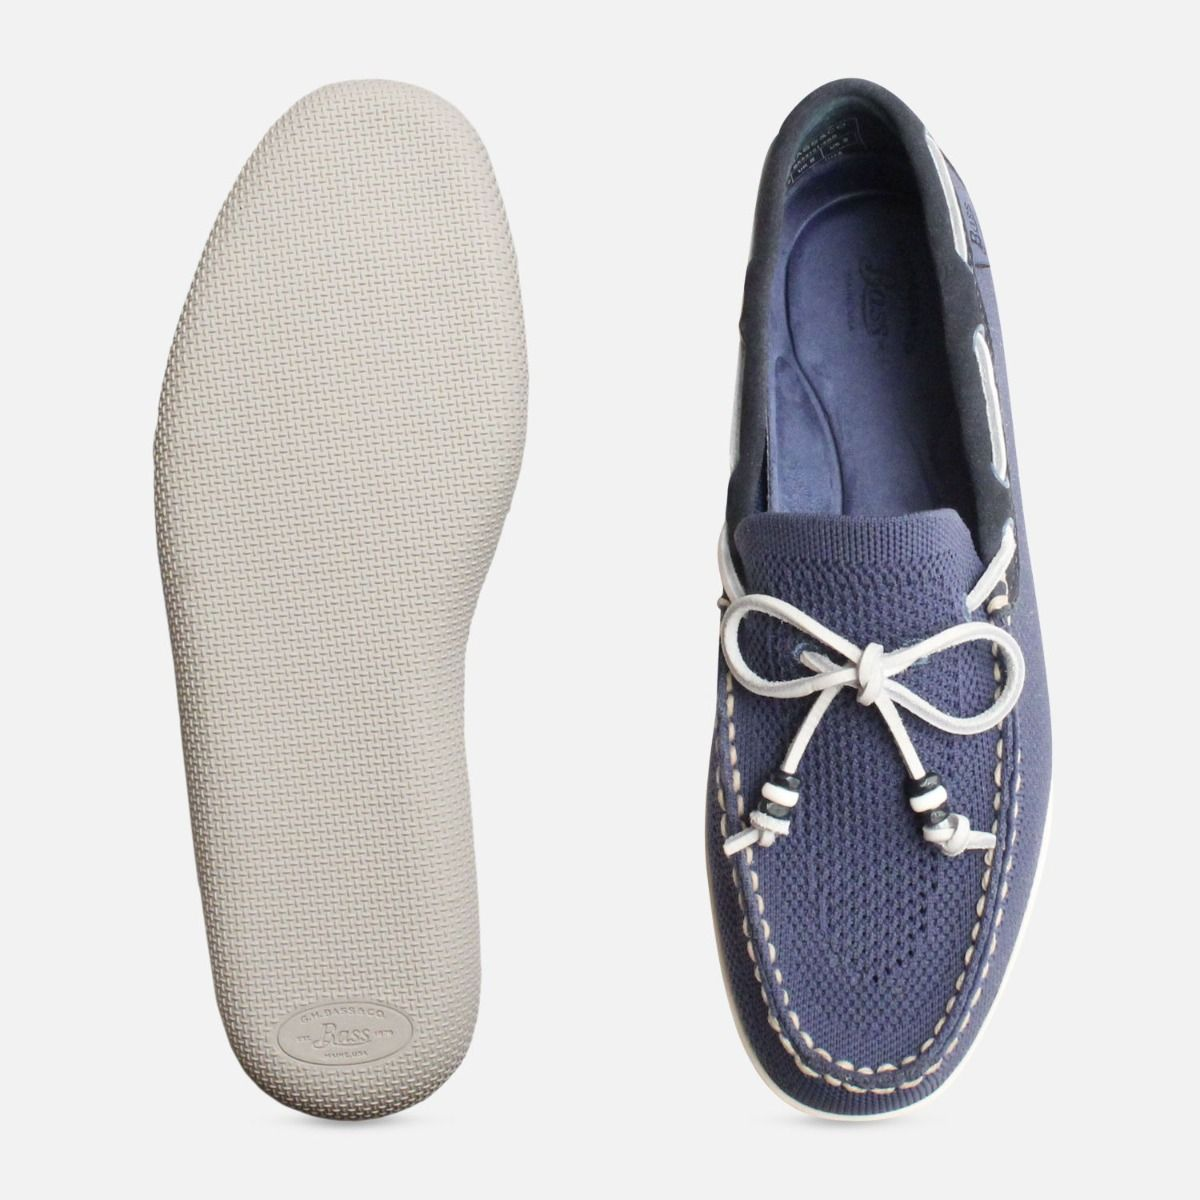 Blue Mens Wilton Weave Driver by Bass Shoes